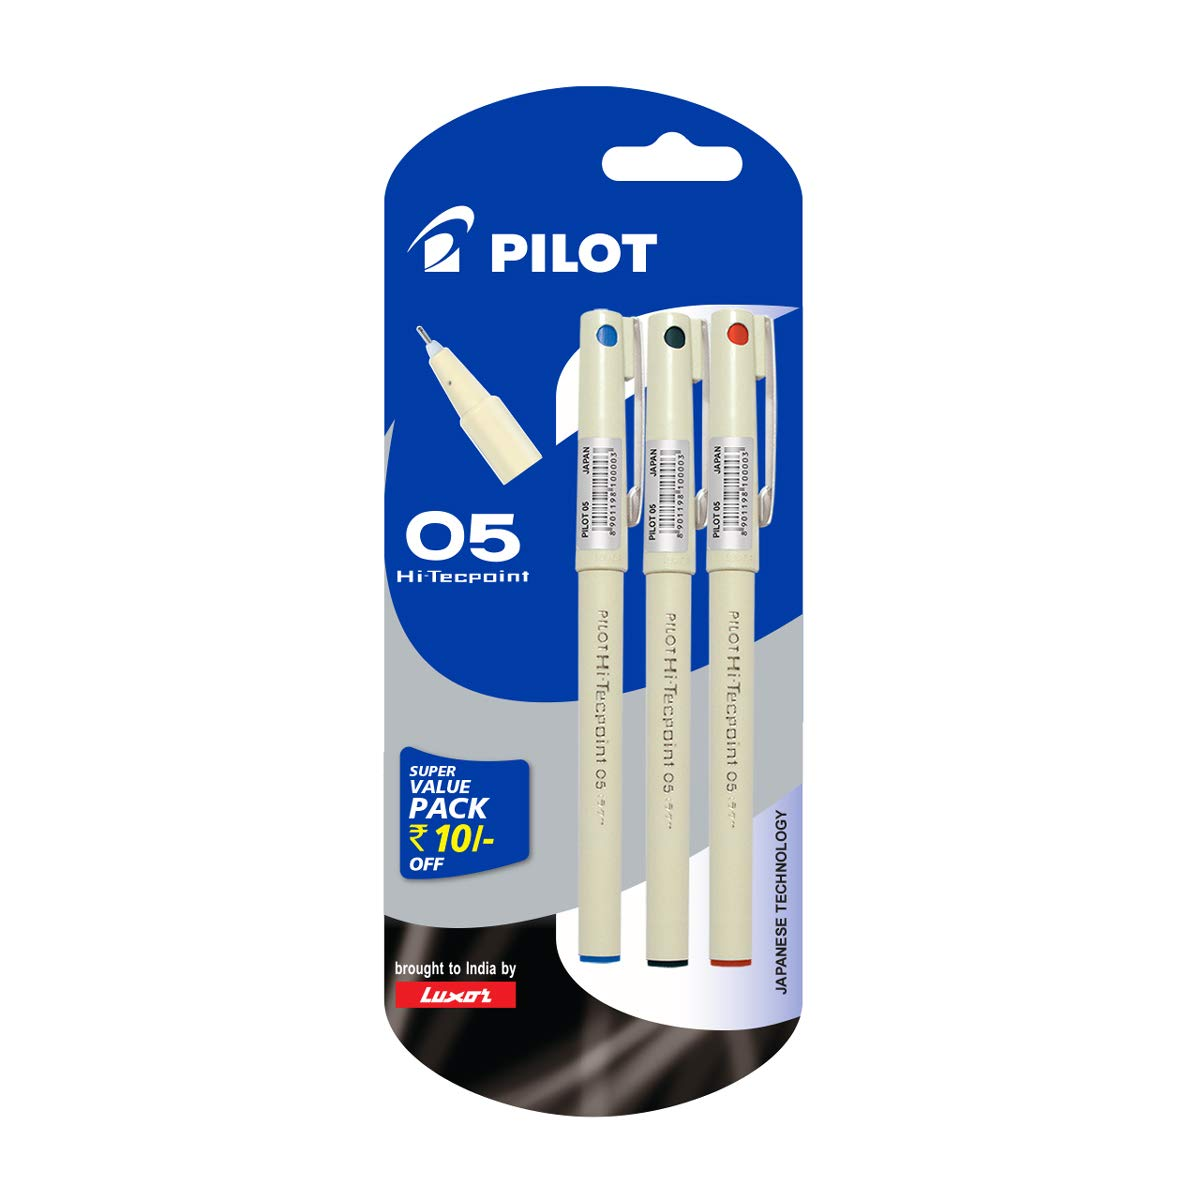 Pilot Hi-Techpoint 05-1Blue + 1Black + 1Red product image